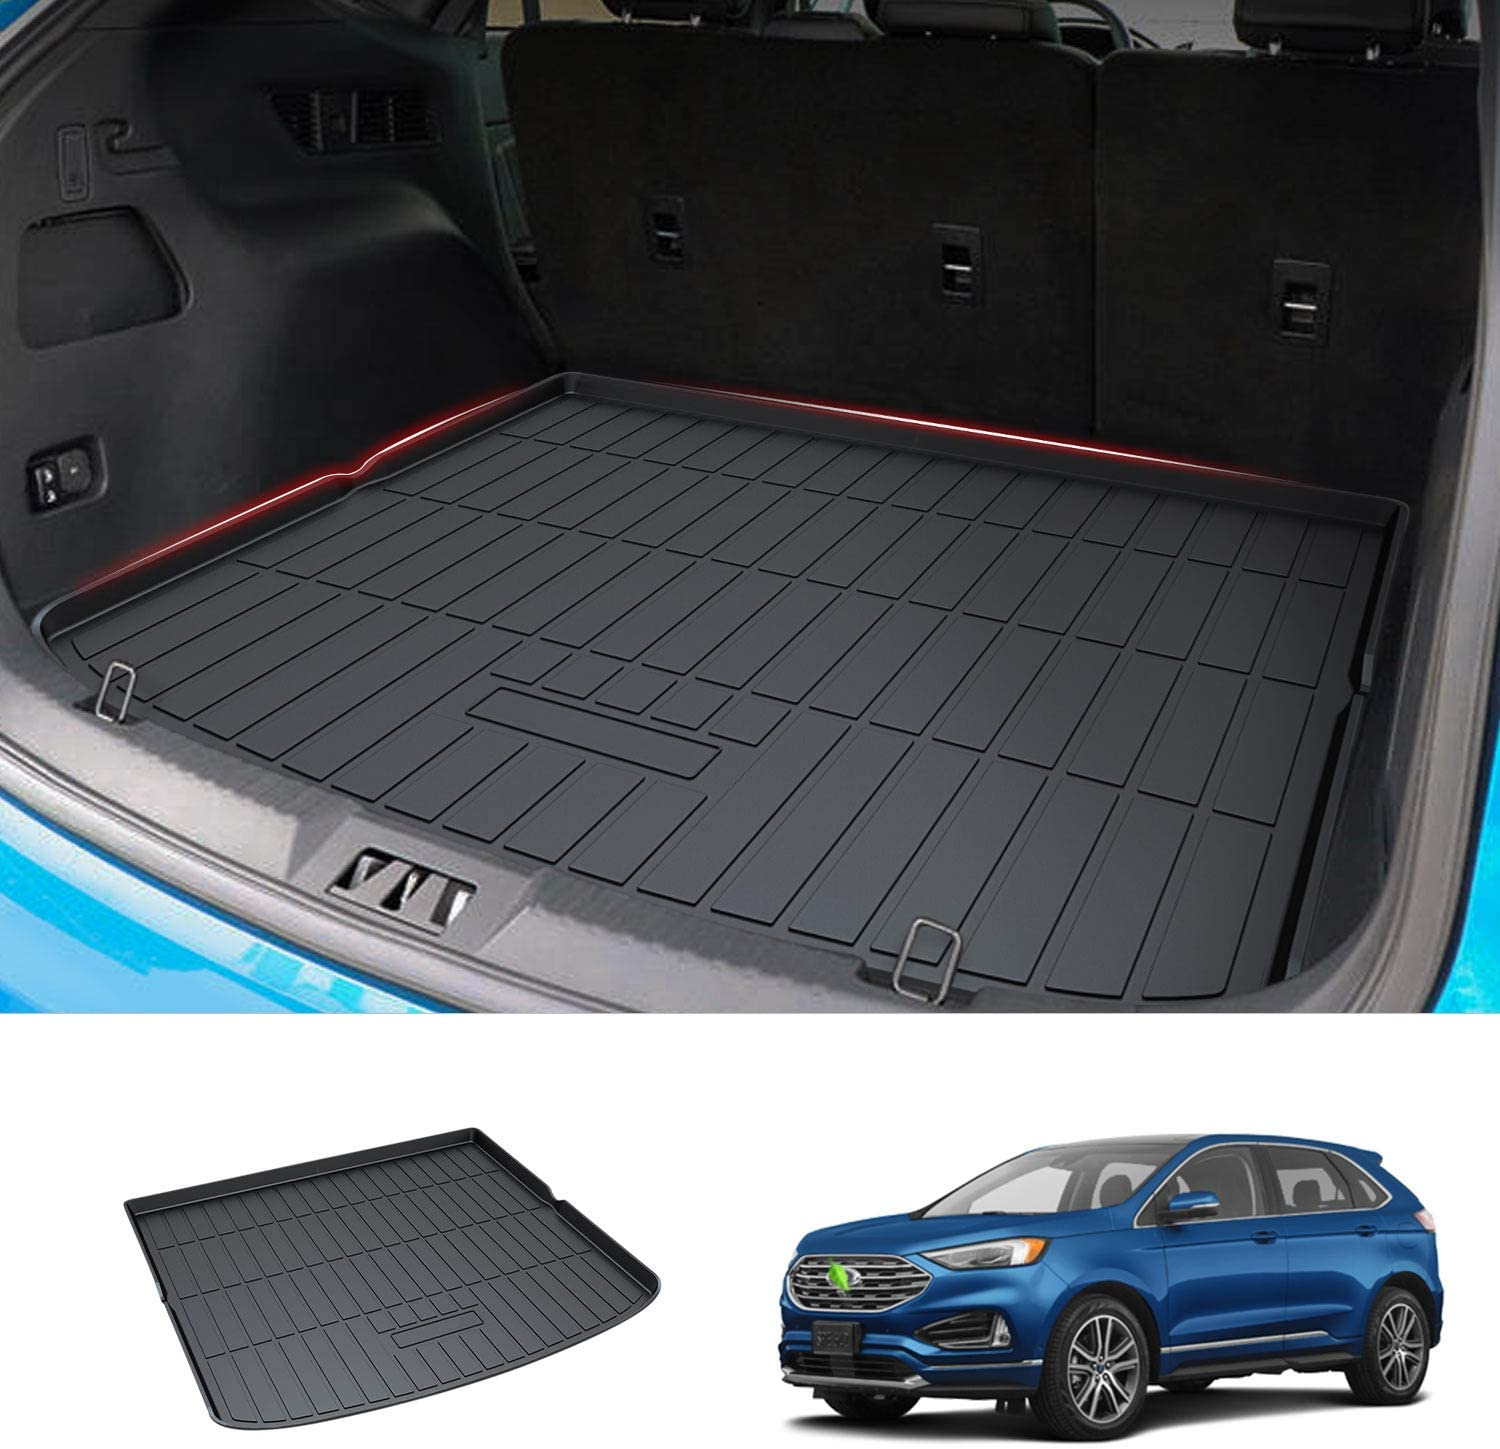 Mixsuper Cargo Liner for 2020 Edge TPO All Weather Rear Durable Odorless 3D Trunk Floor Mat Custom Fit for Ford Edge 5 Seats Only 2015-2019